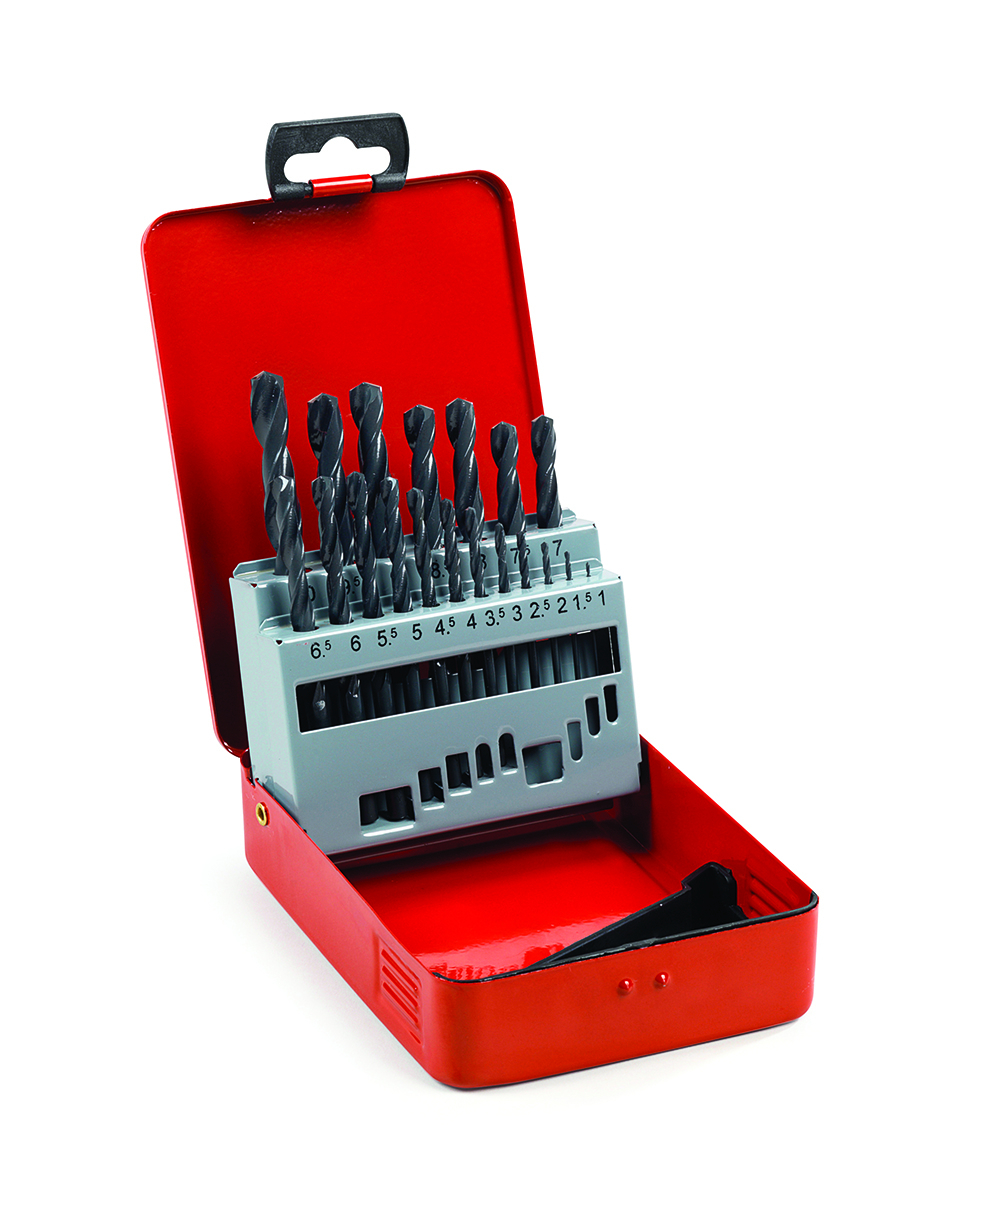 Addax HSS-R Jobber Drill Set 1-10mm 19 Pieces